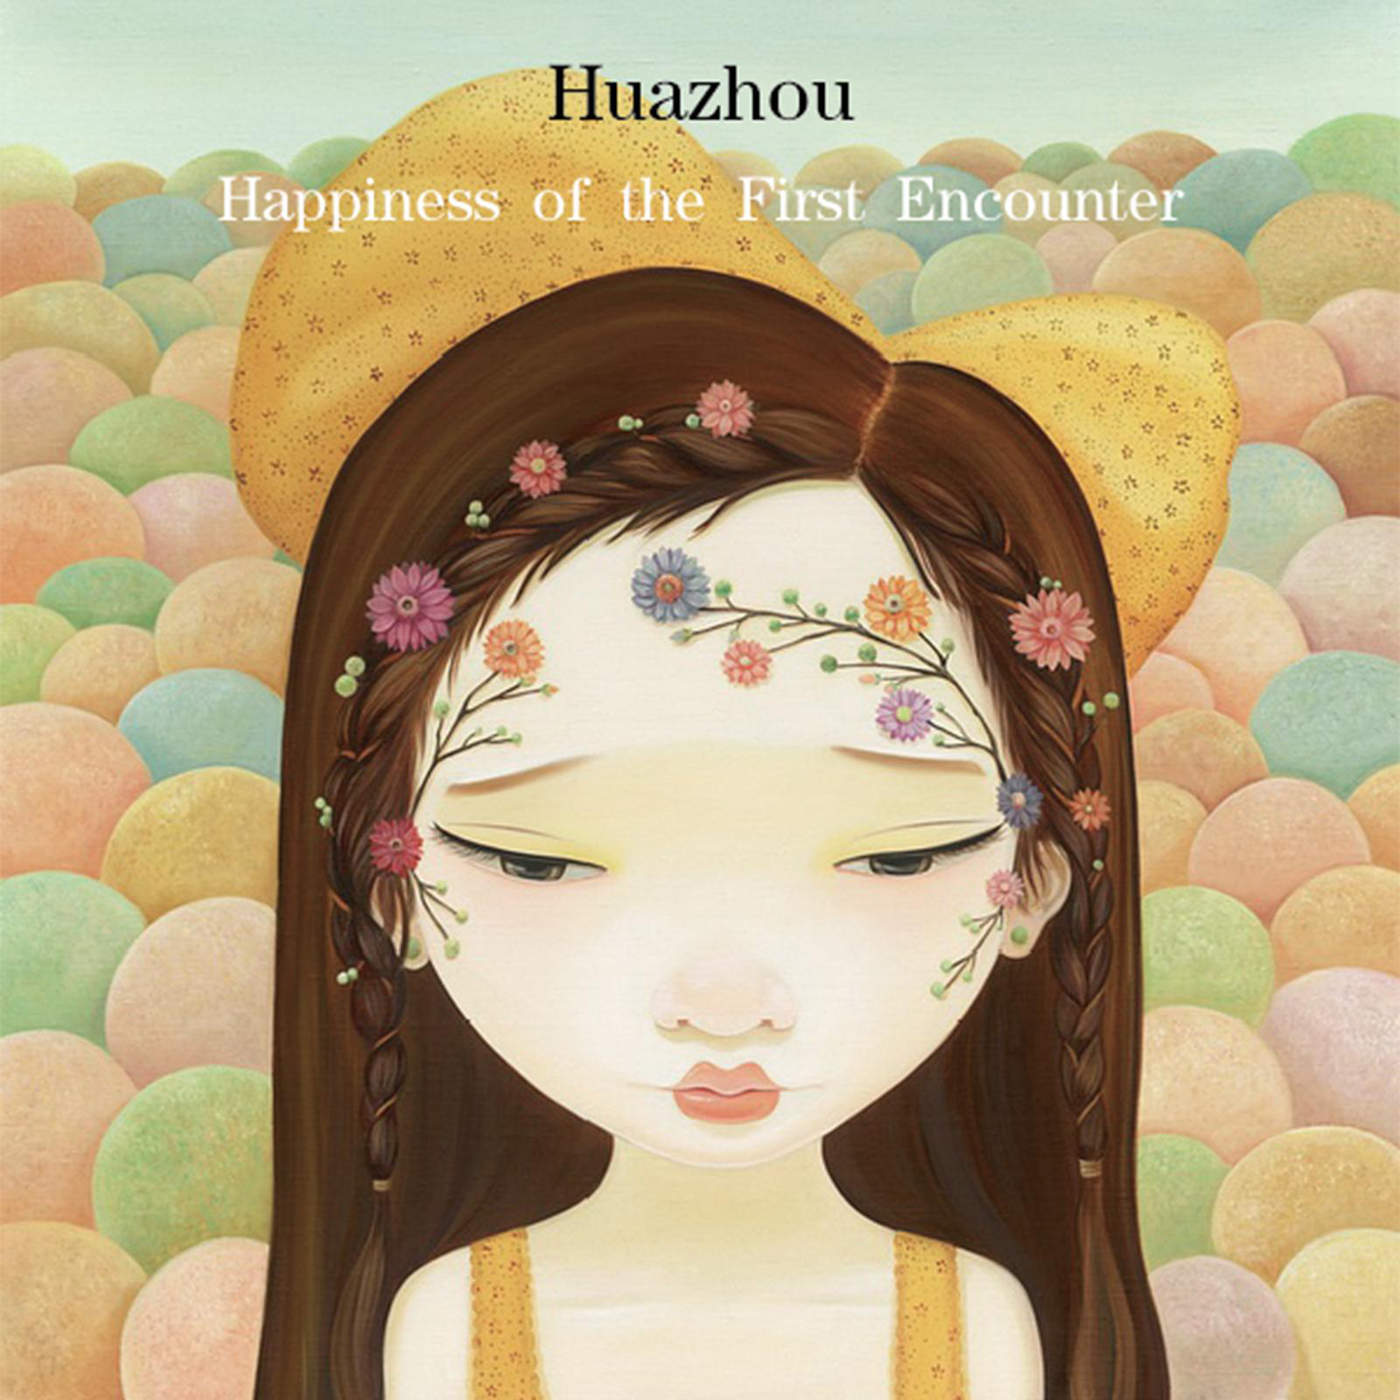 Huazhou - Happiness of the First Encounter